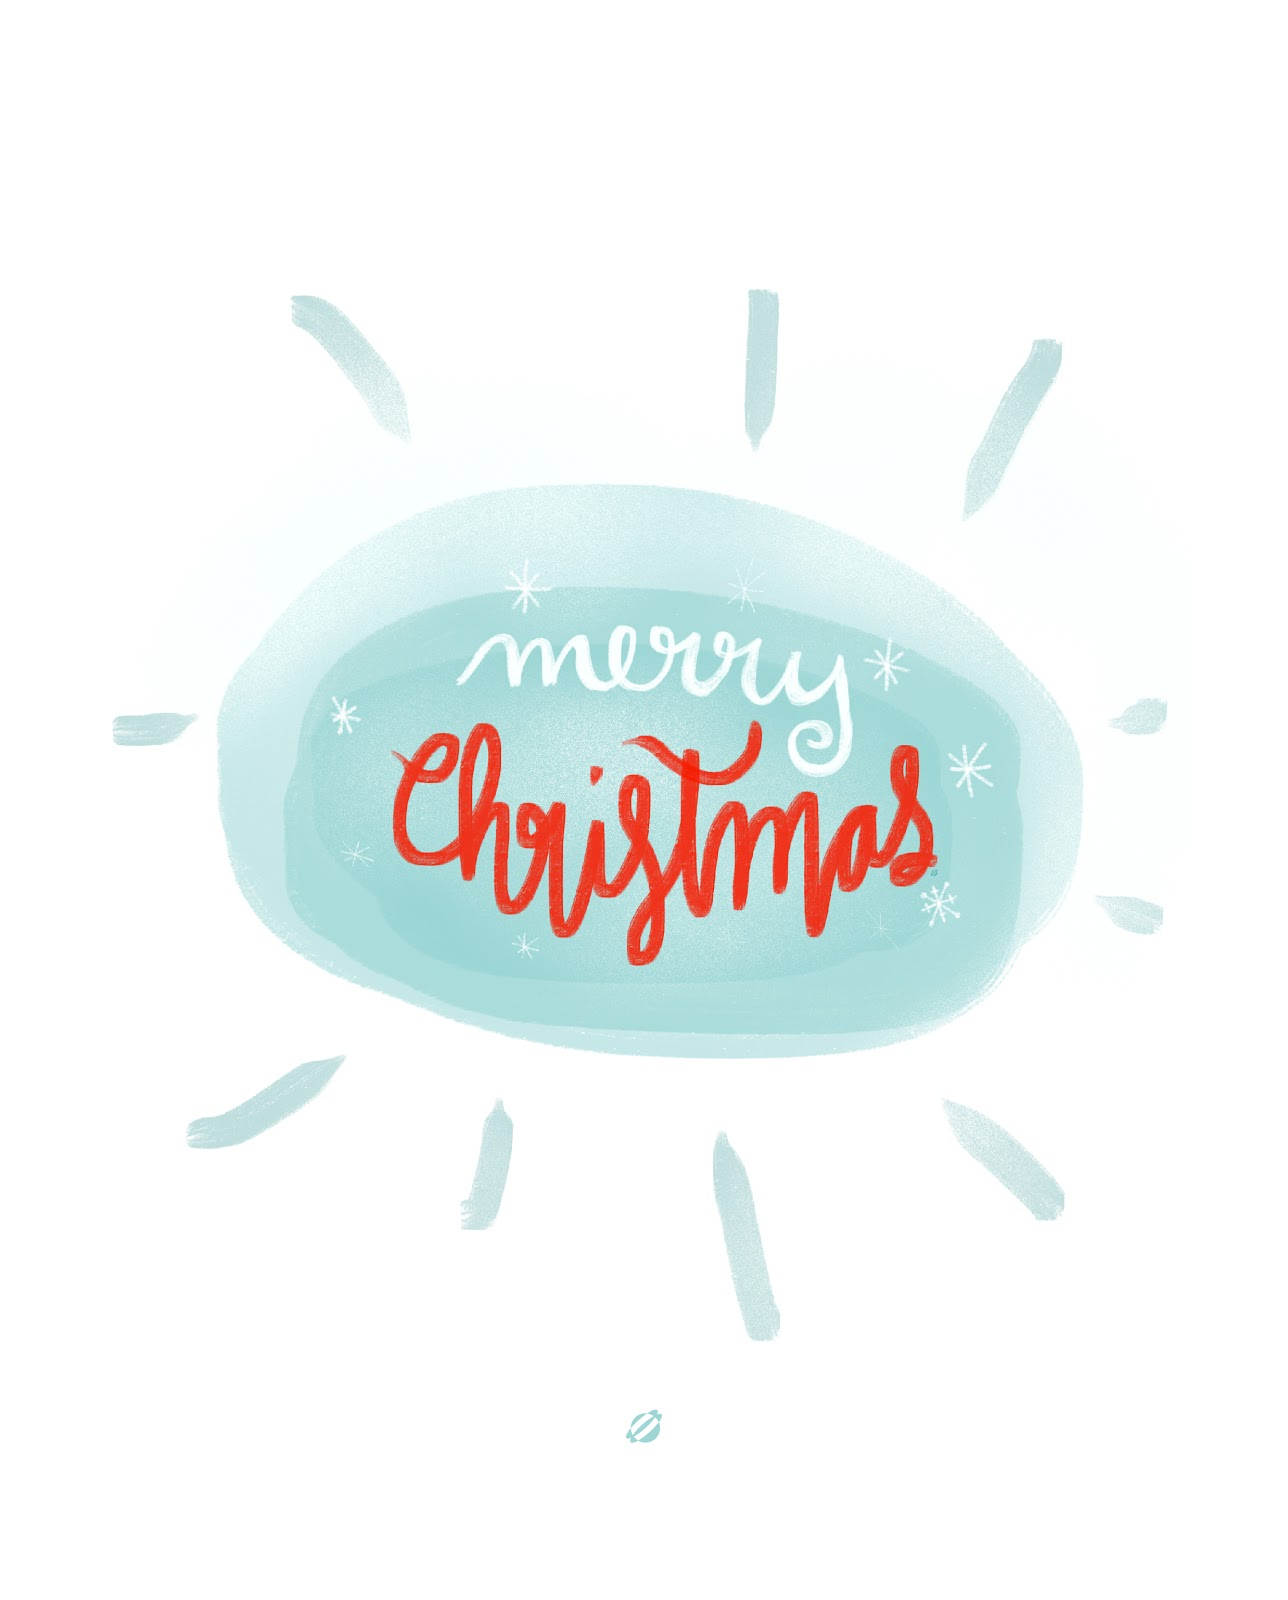 LostBumblebee ©2014 MDBN : Merry Christmas : Free Printable : Personal Use Only